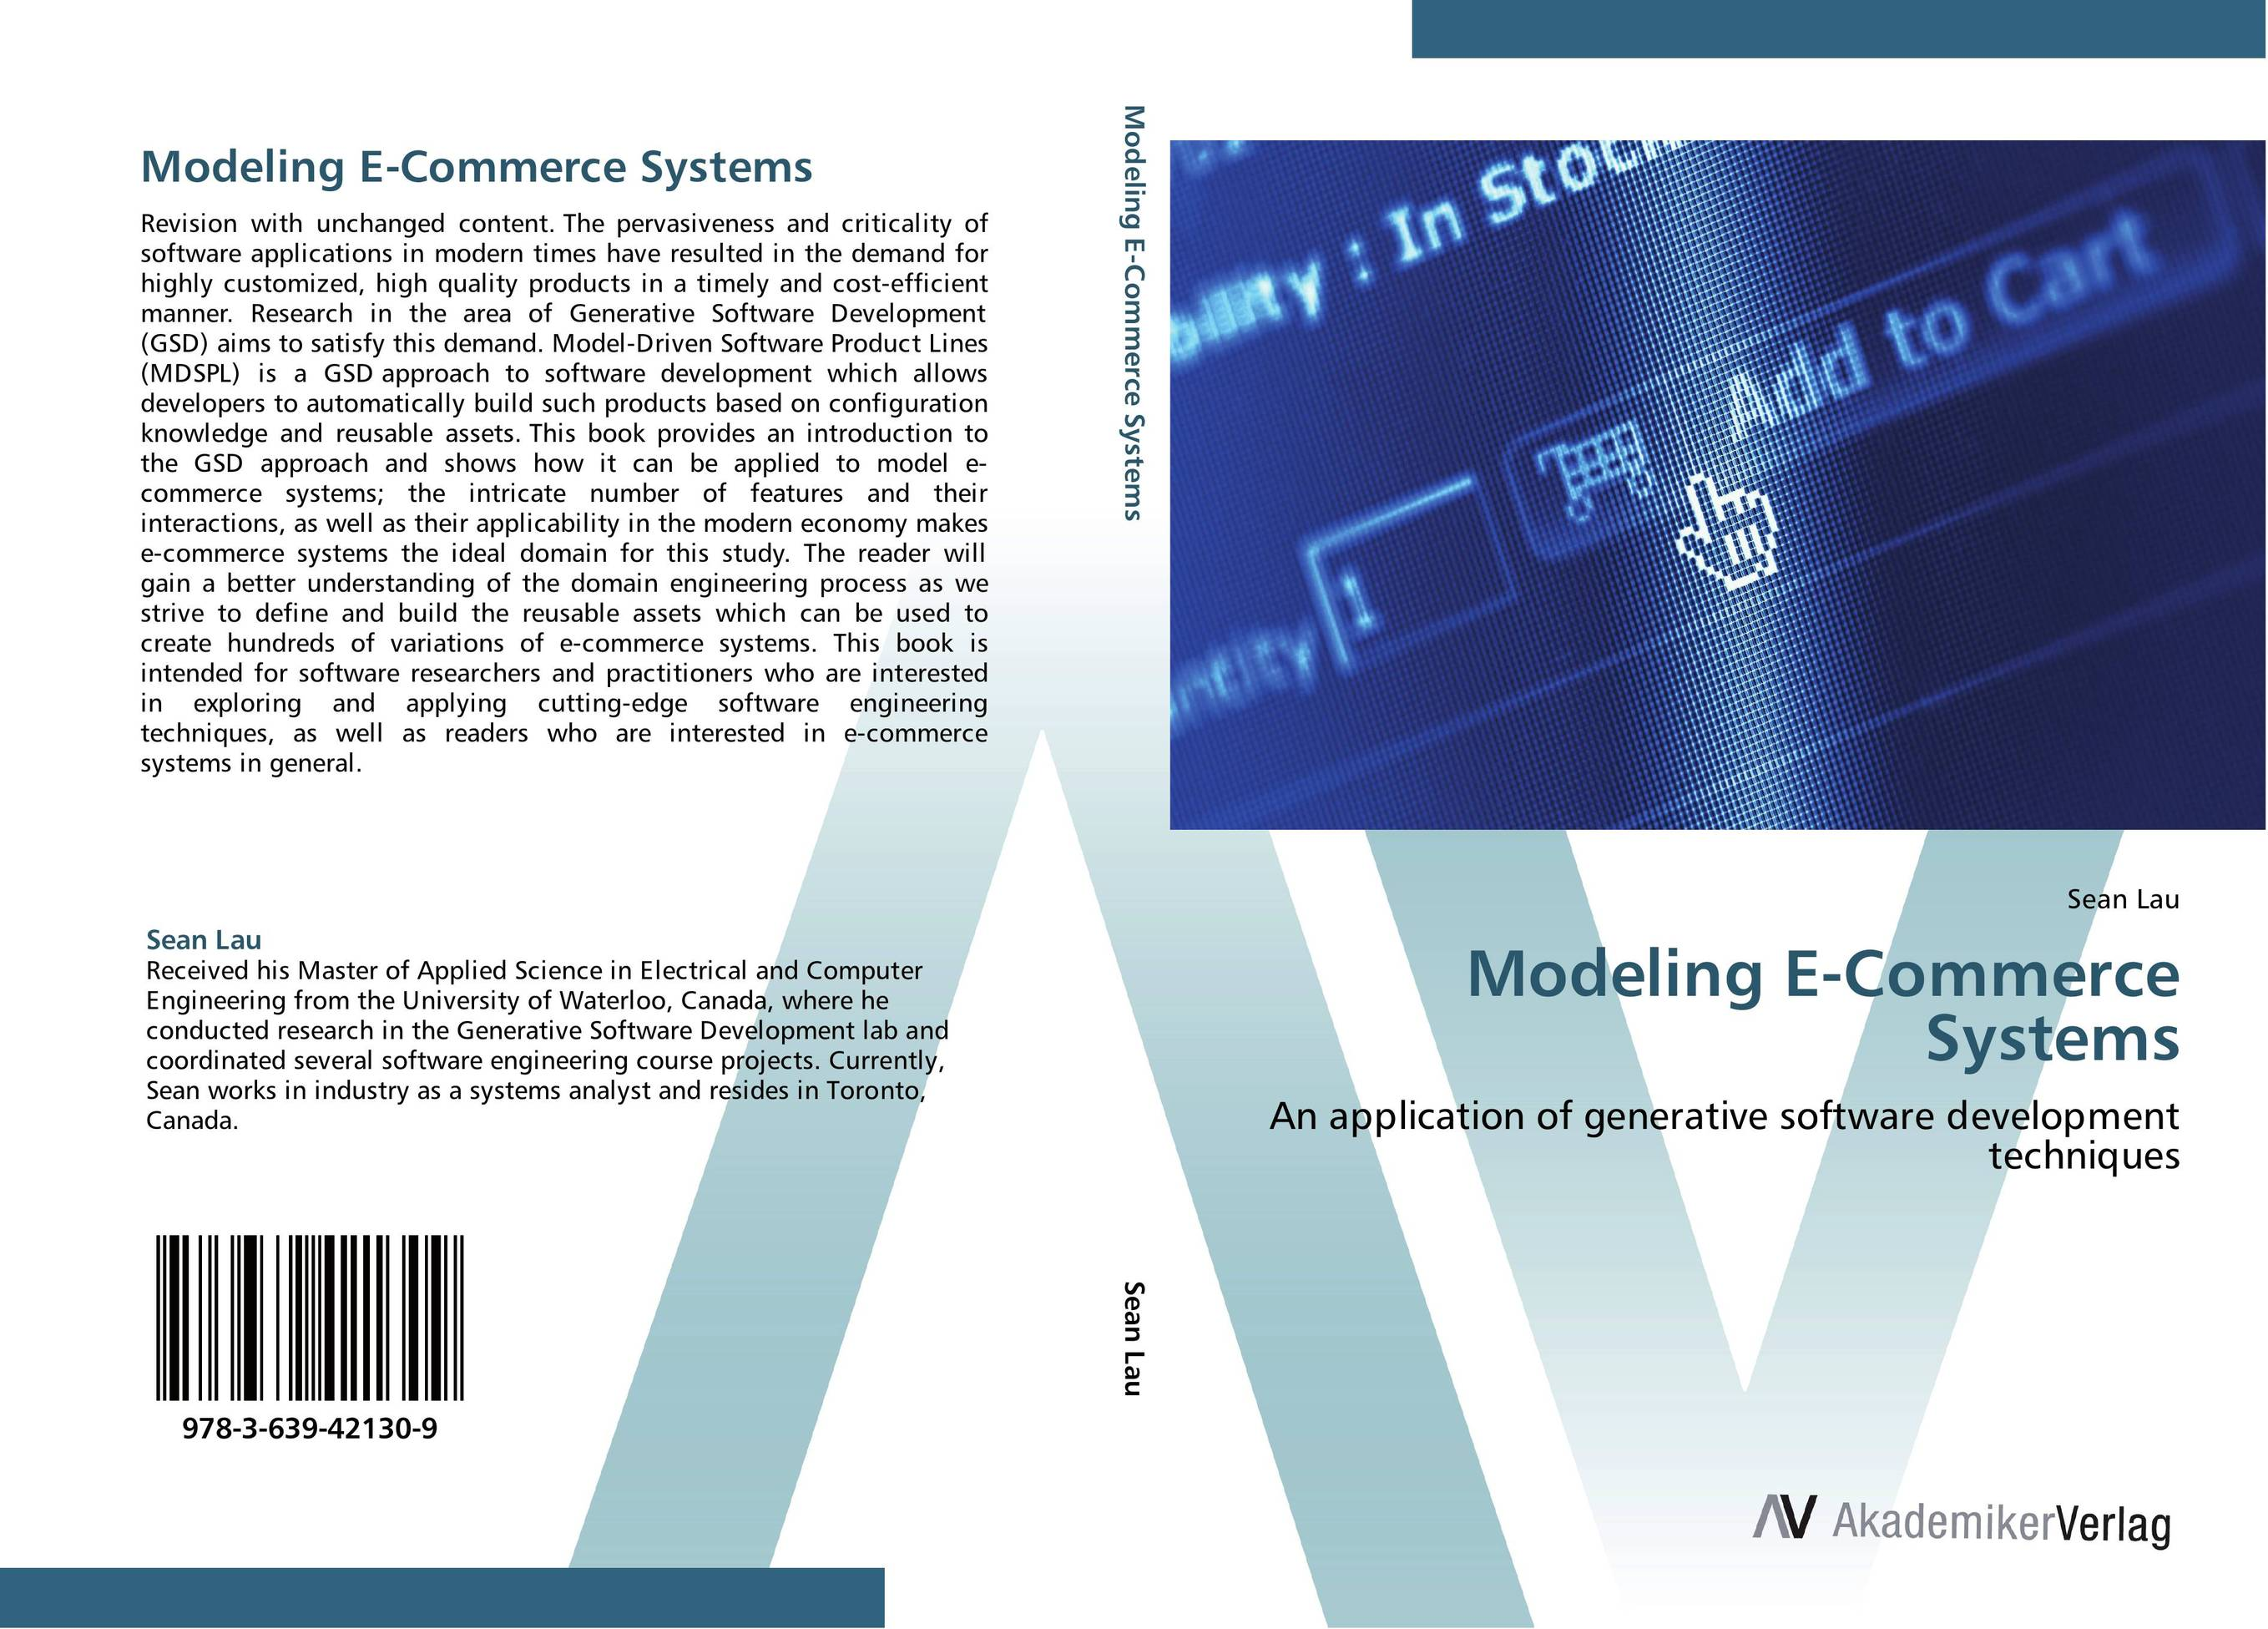 Modeling E-Commerce Systems applying user centered design techniques in software development